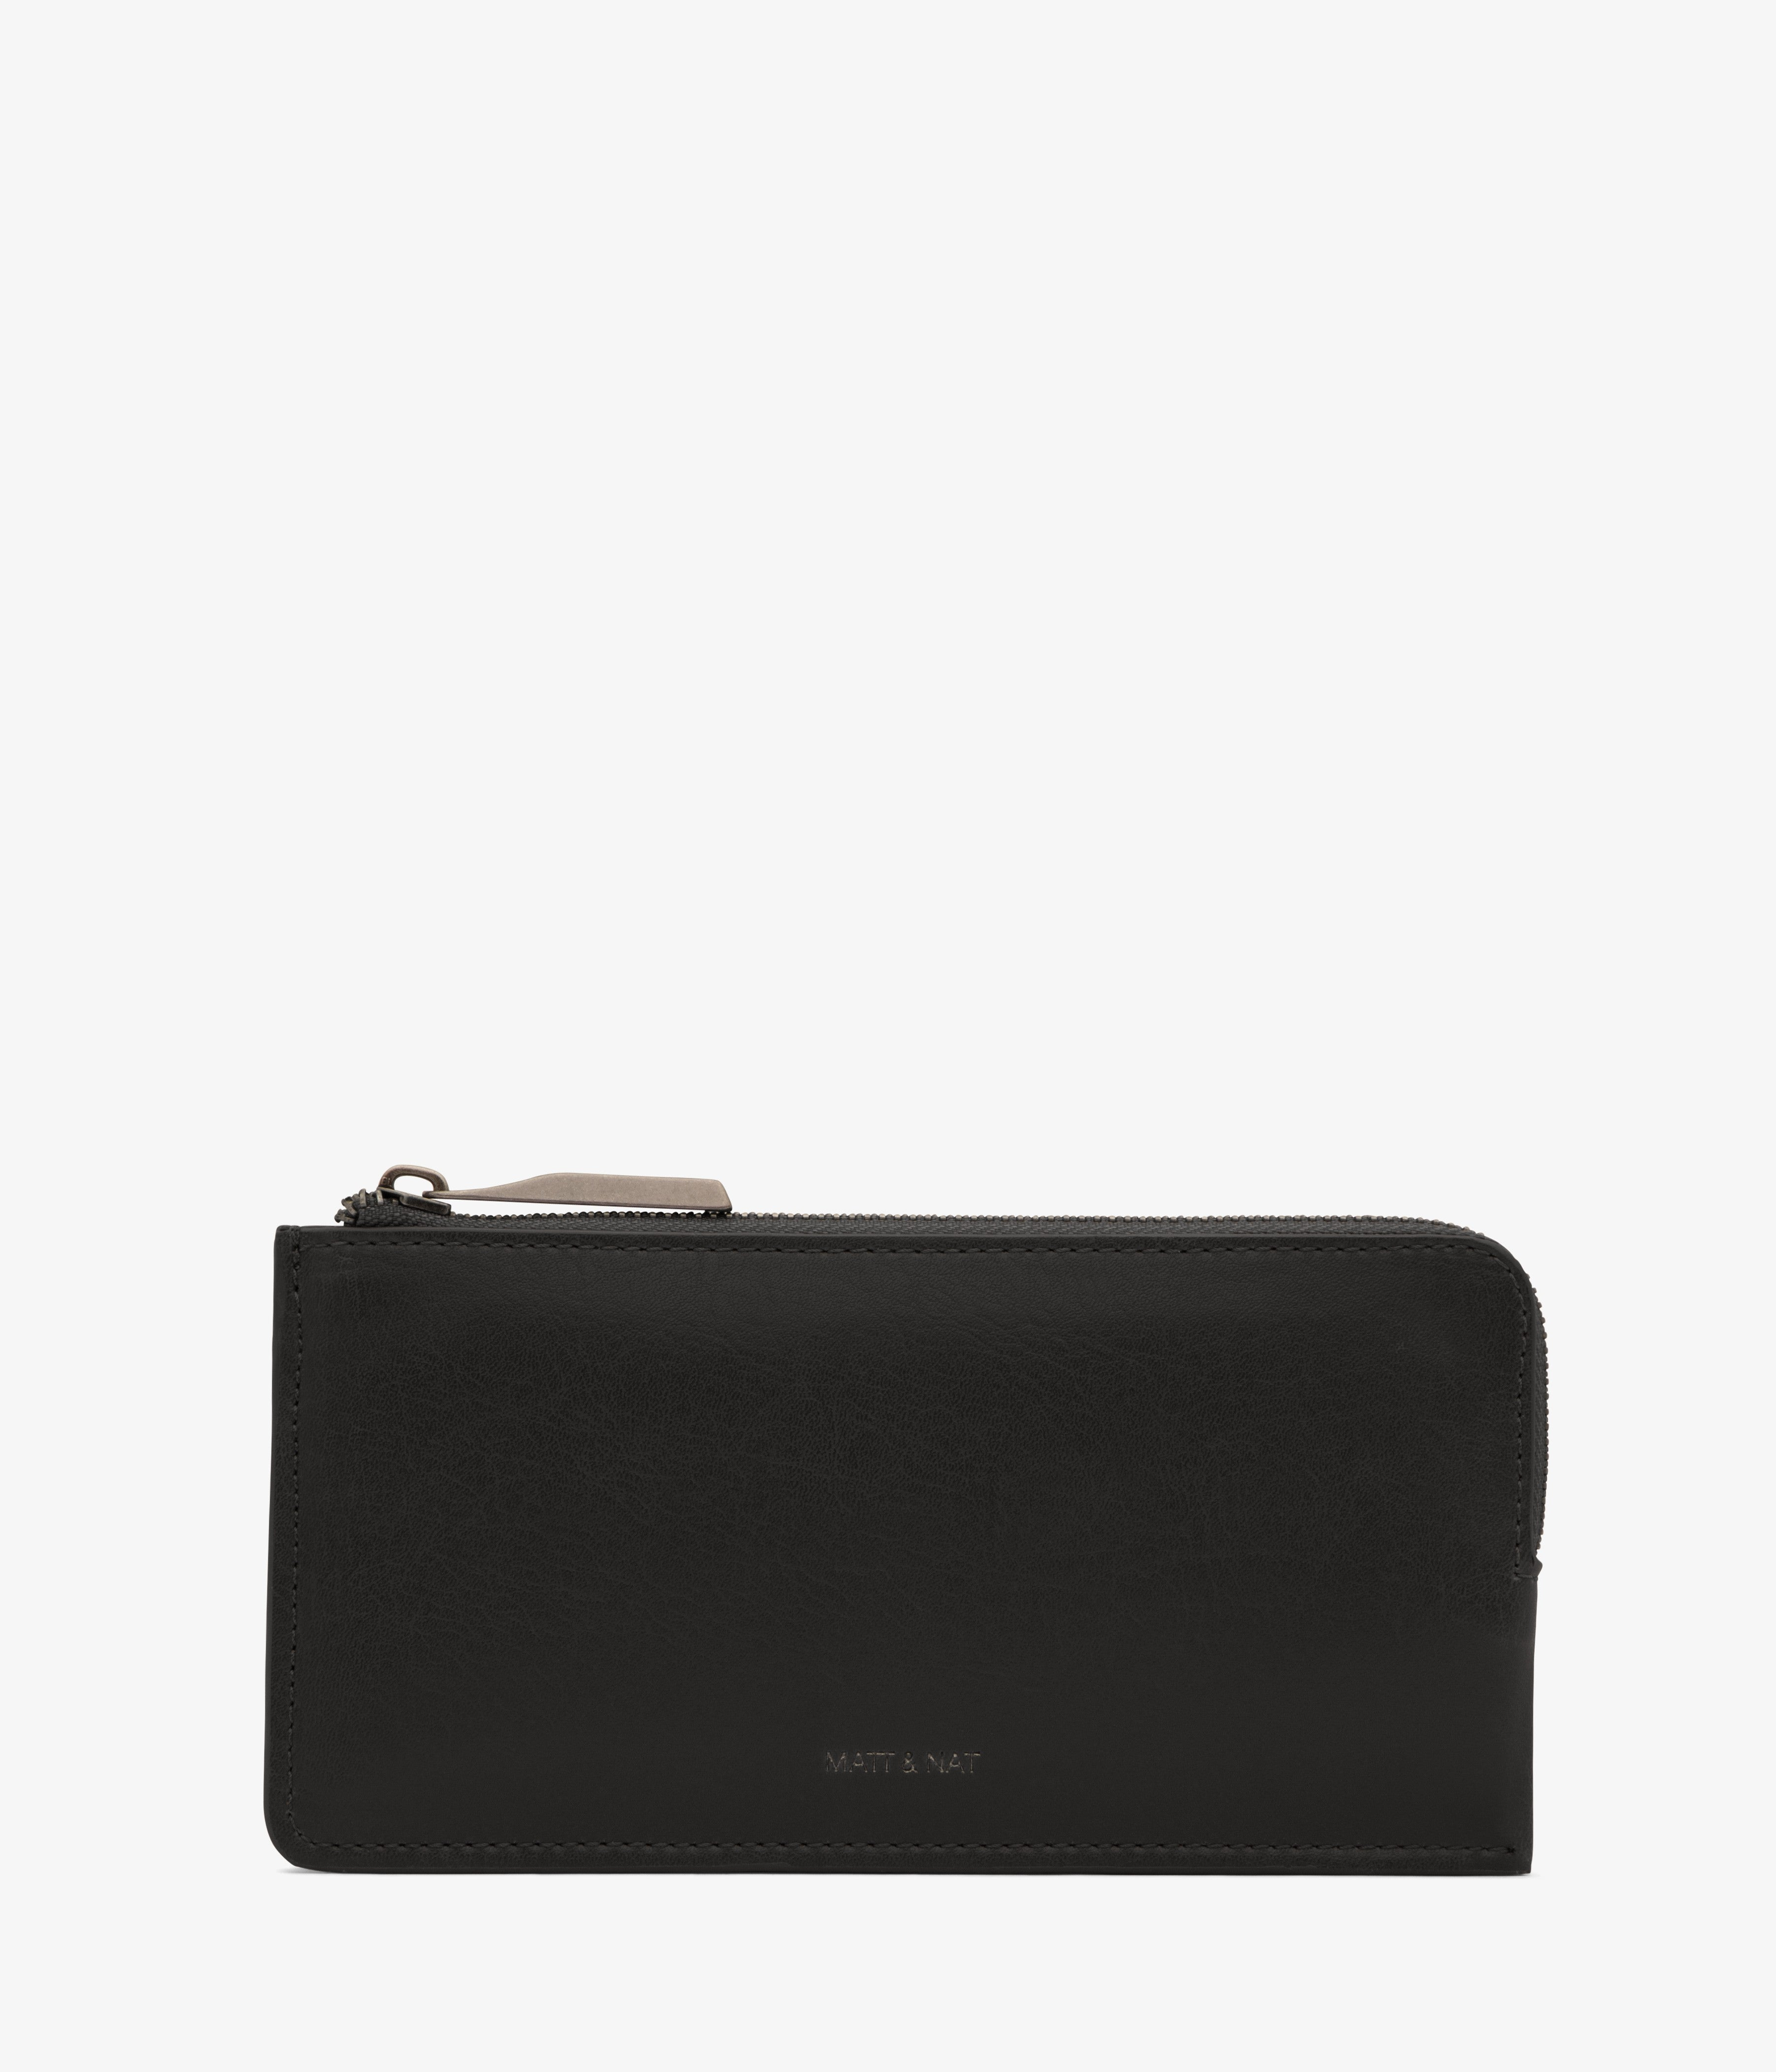 MATT & NAT Seva Wallet